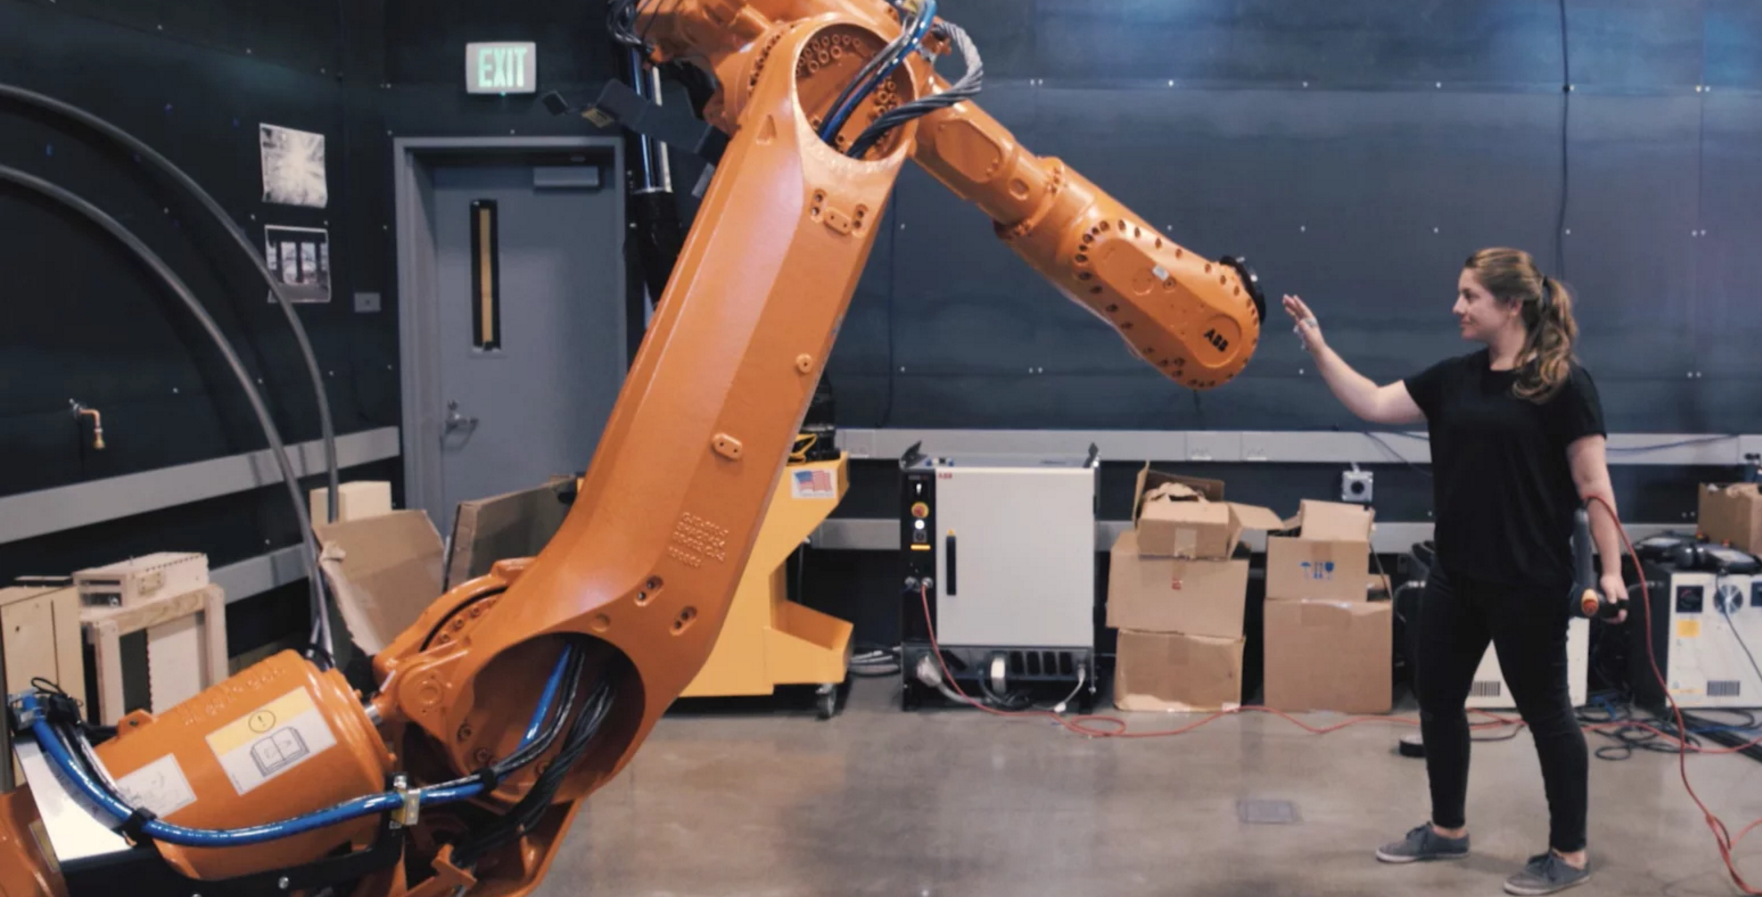 Watch A Robot Tamer Control Industrial Machines With Simple Gestures